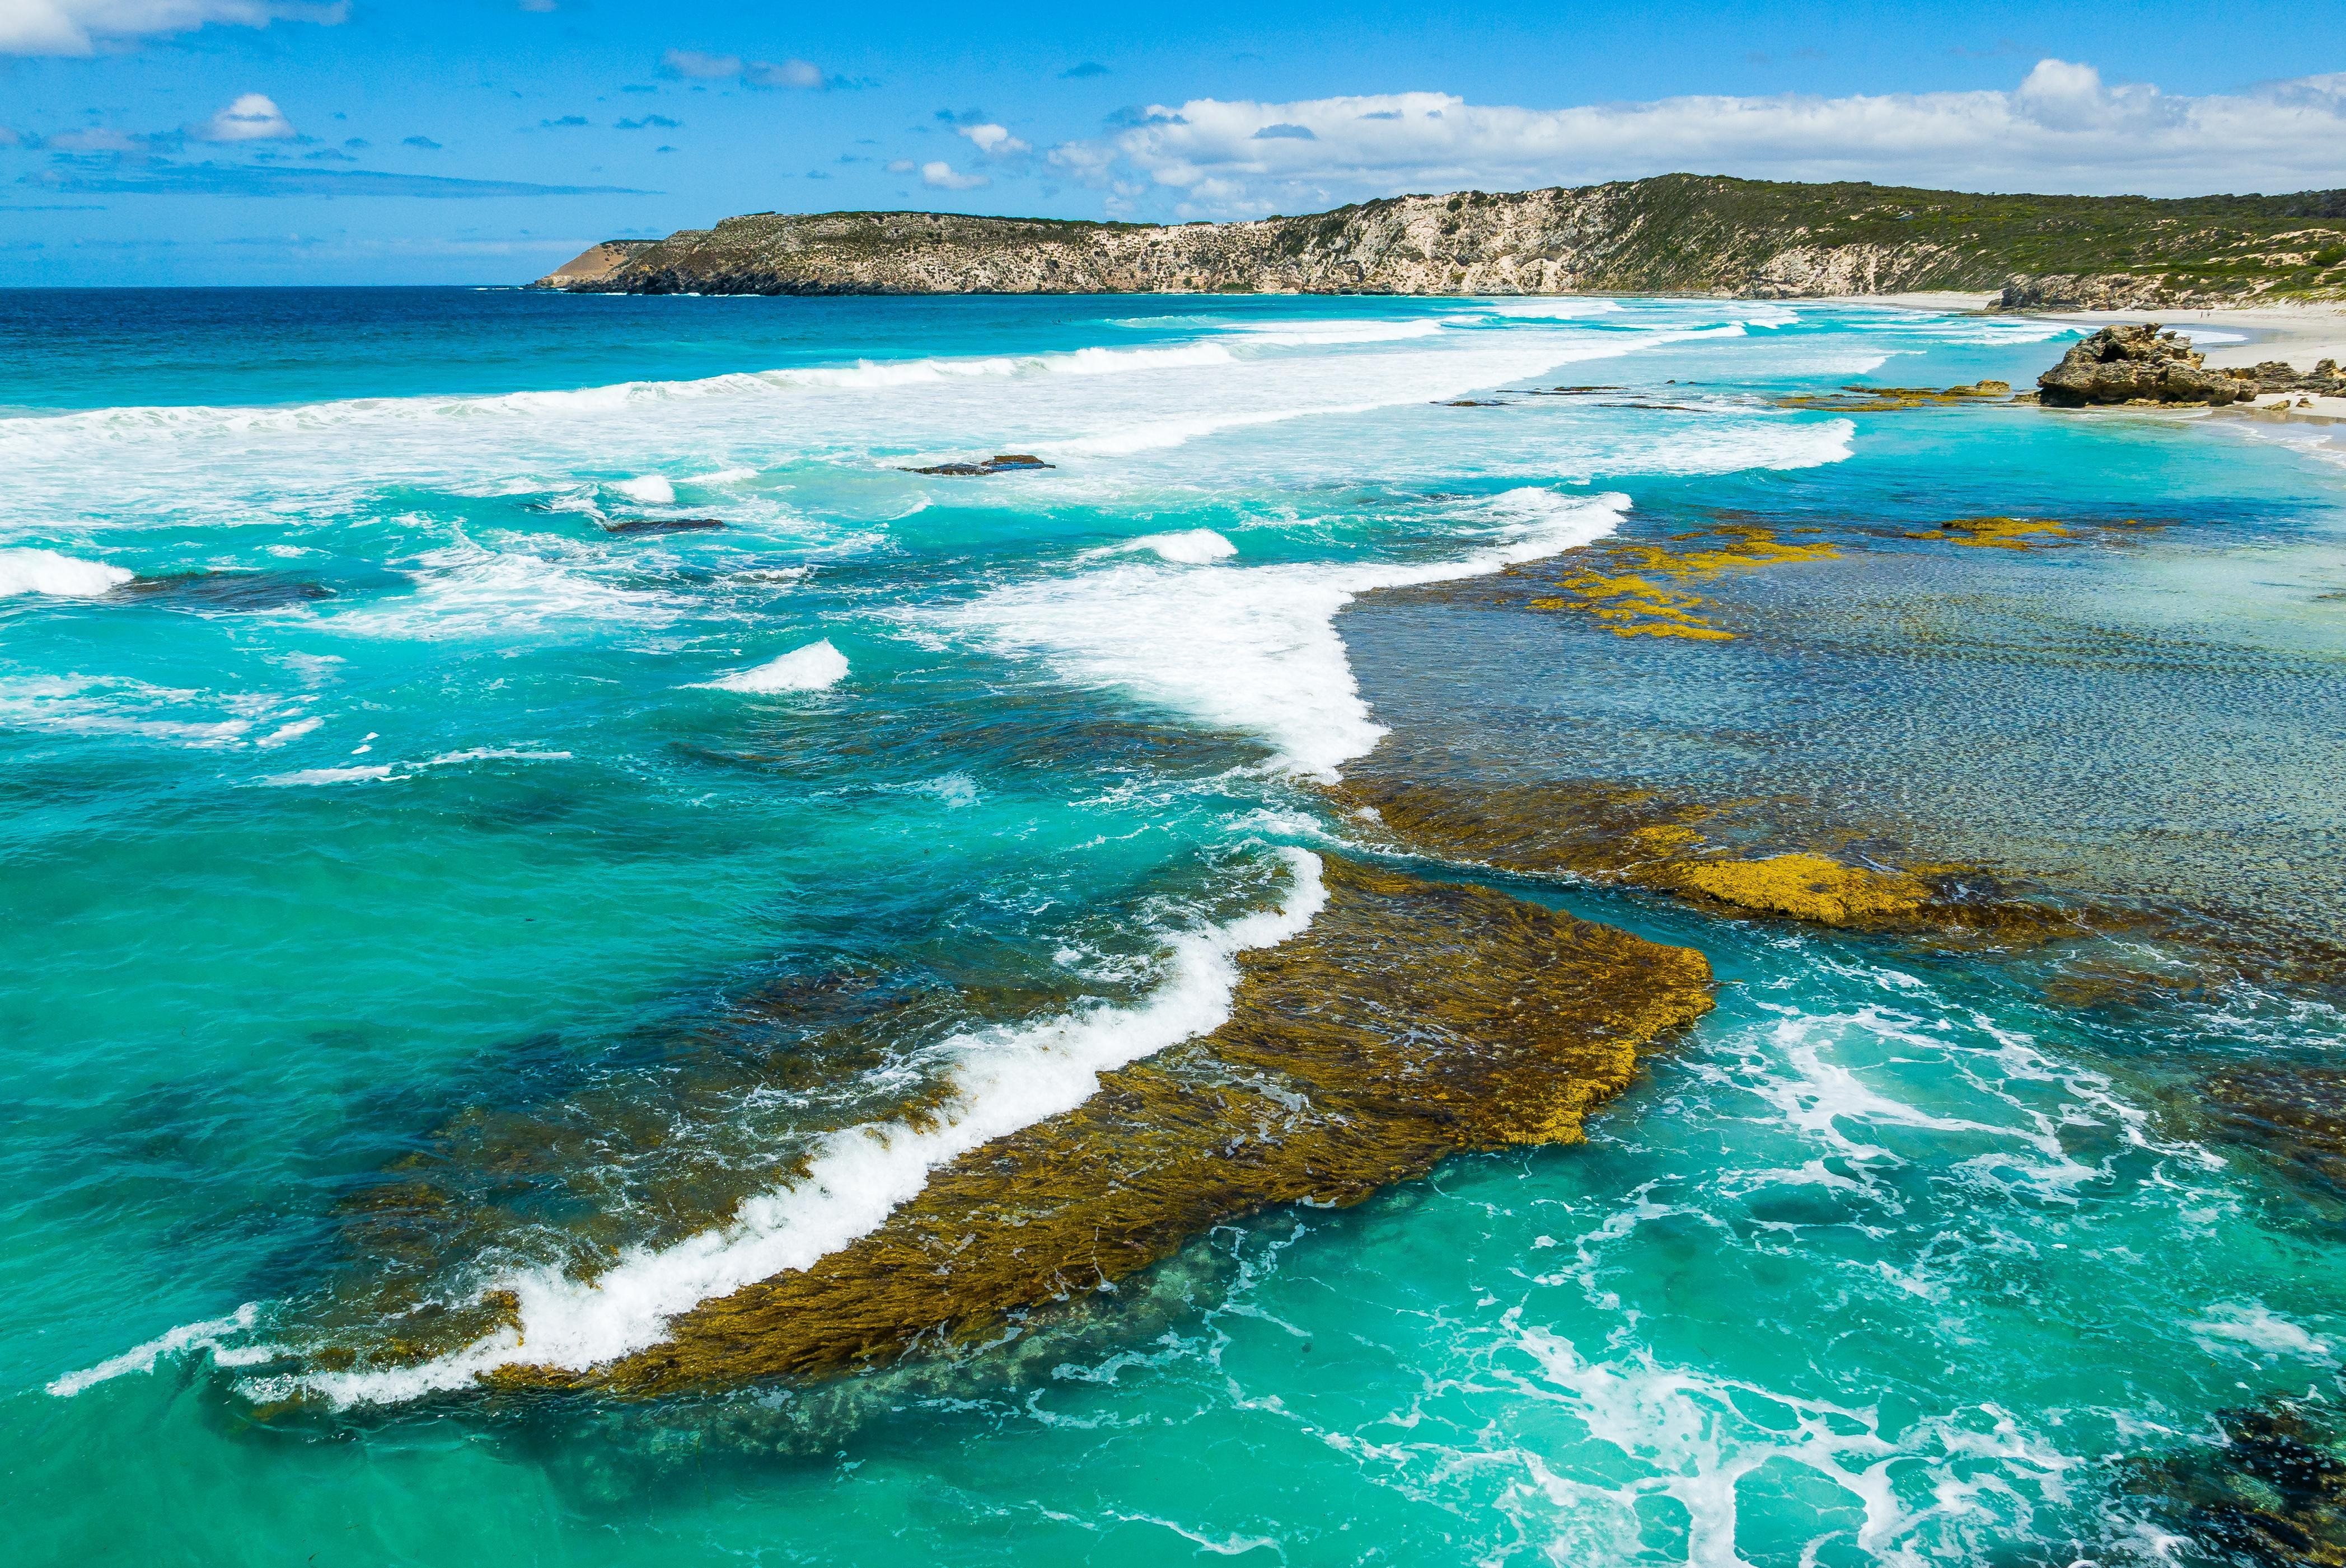 How to Spend 1 Day on Kangaroo Island